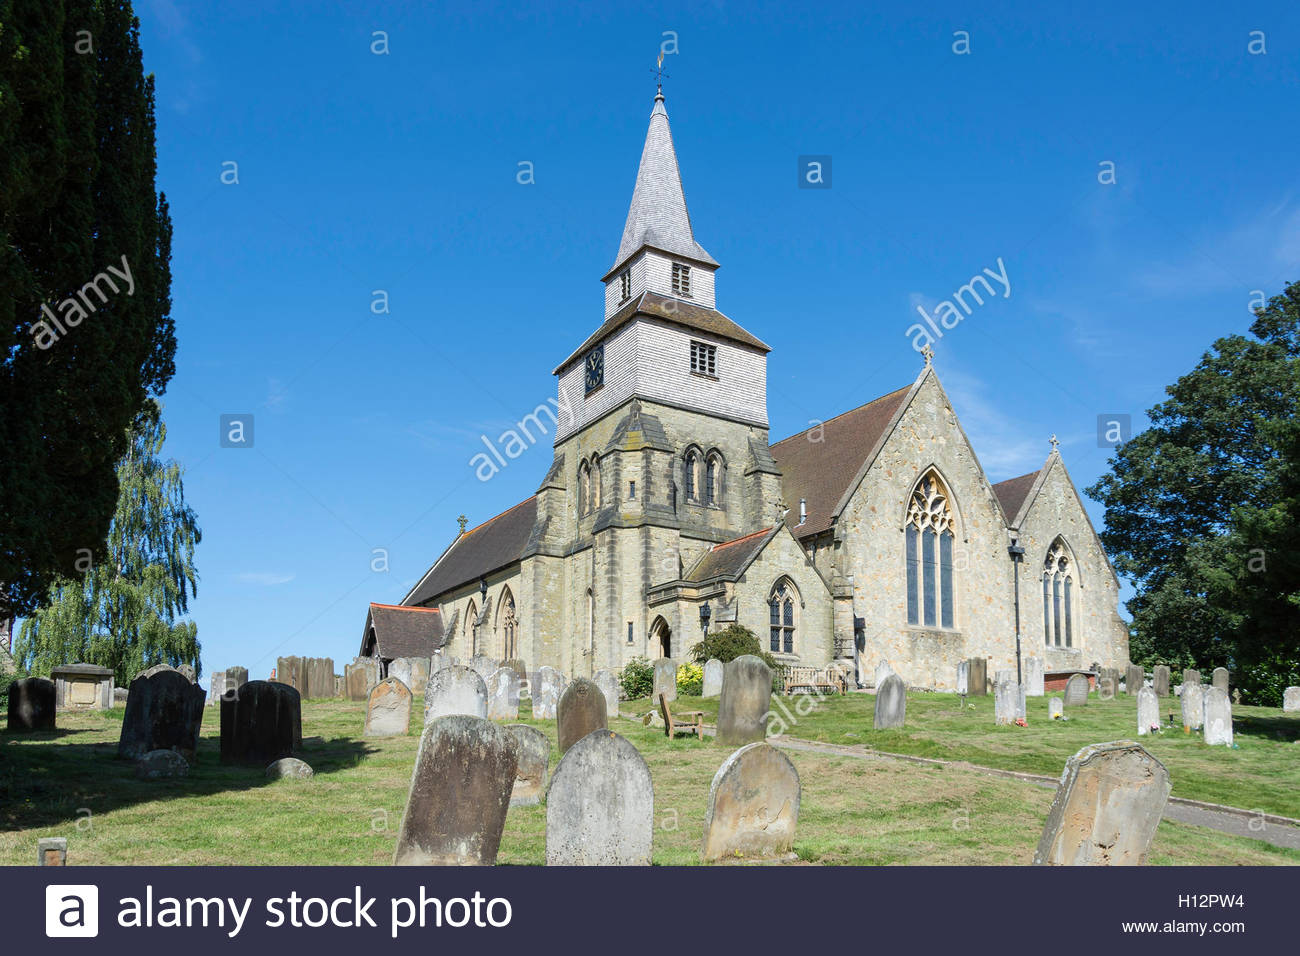 St. Nicholas Kirk Aberdeen and the Northeast, St Nicholas Churchyard Stock Photos & St Nicholas Churchyard Stock ...